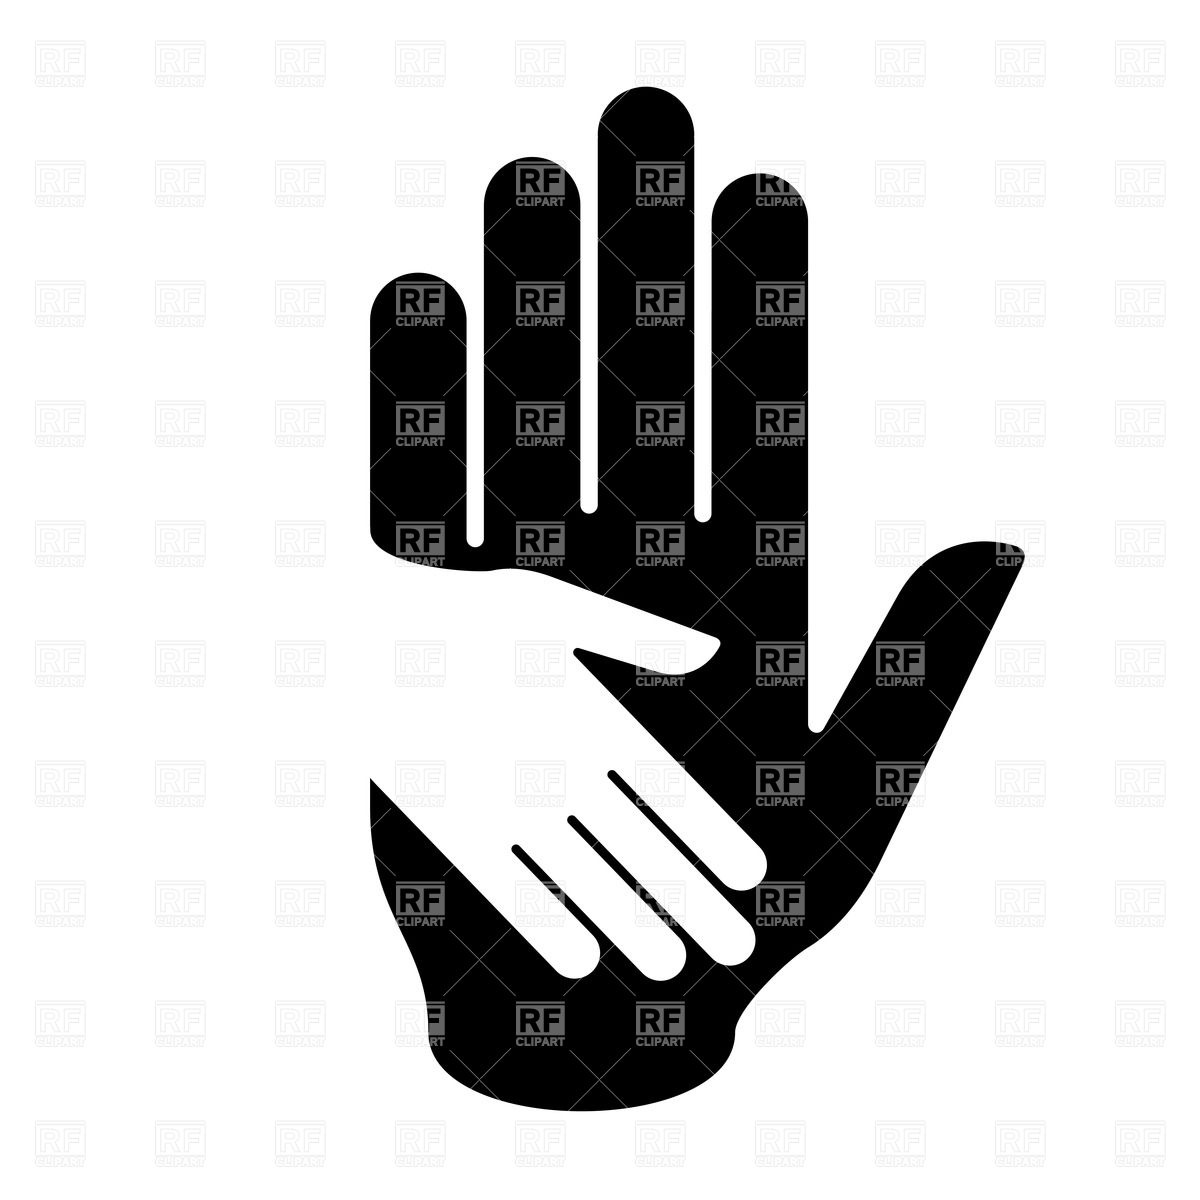 1200x1200 Black And White Illustration Of Helping Hand Vector Image Vector